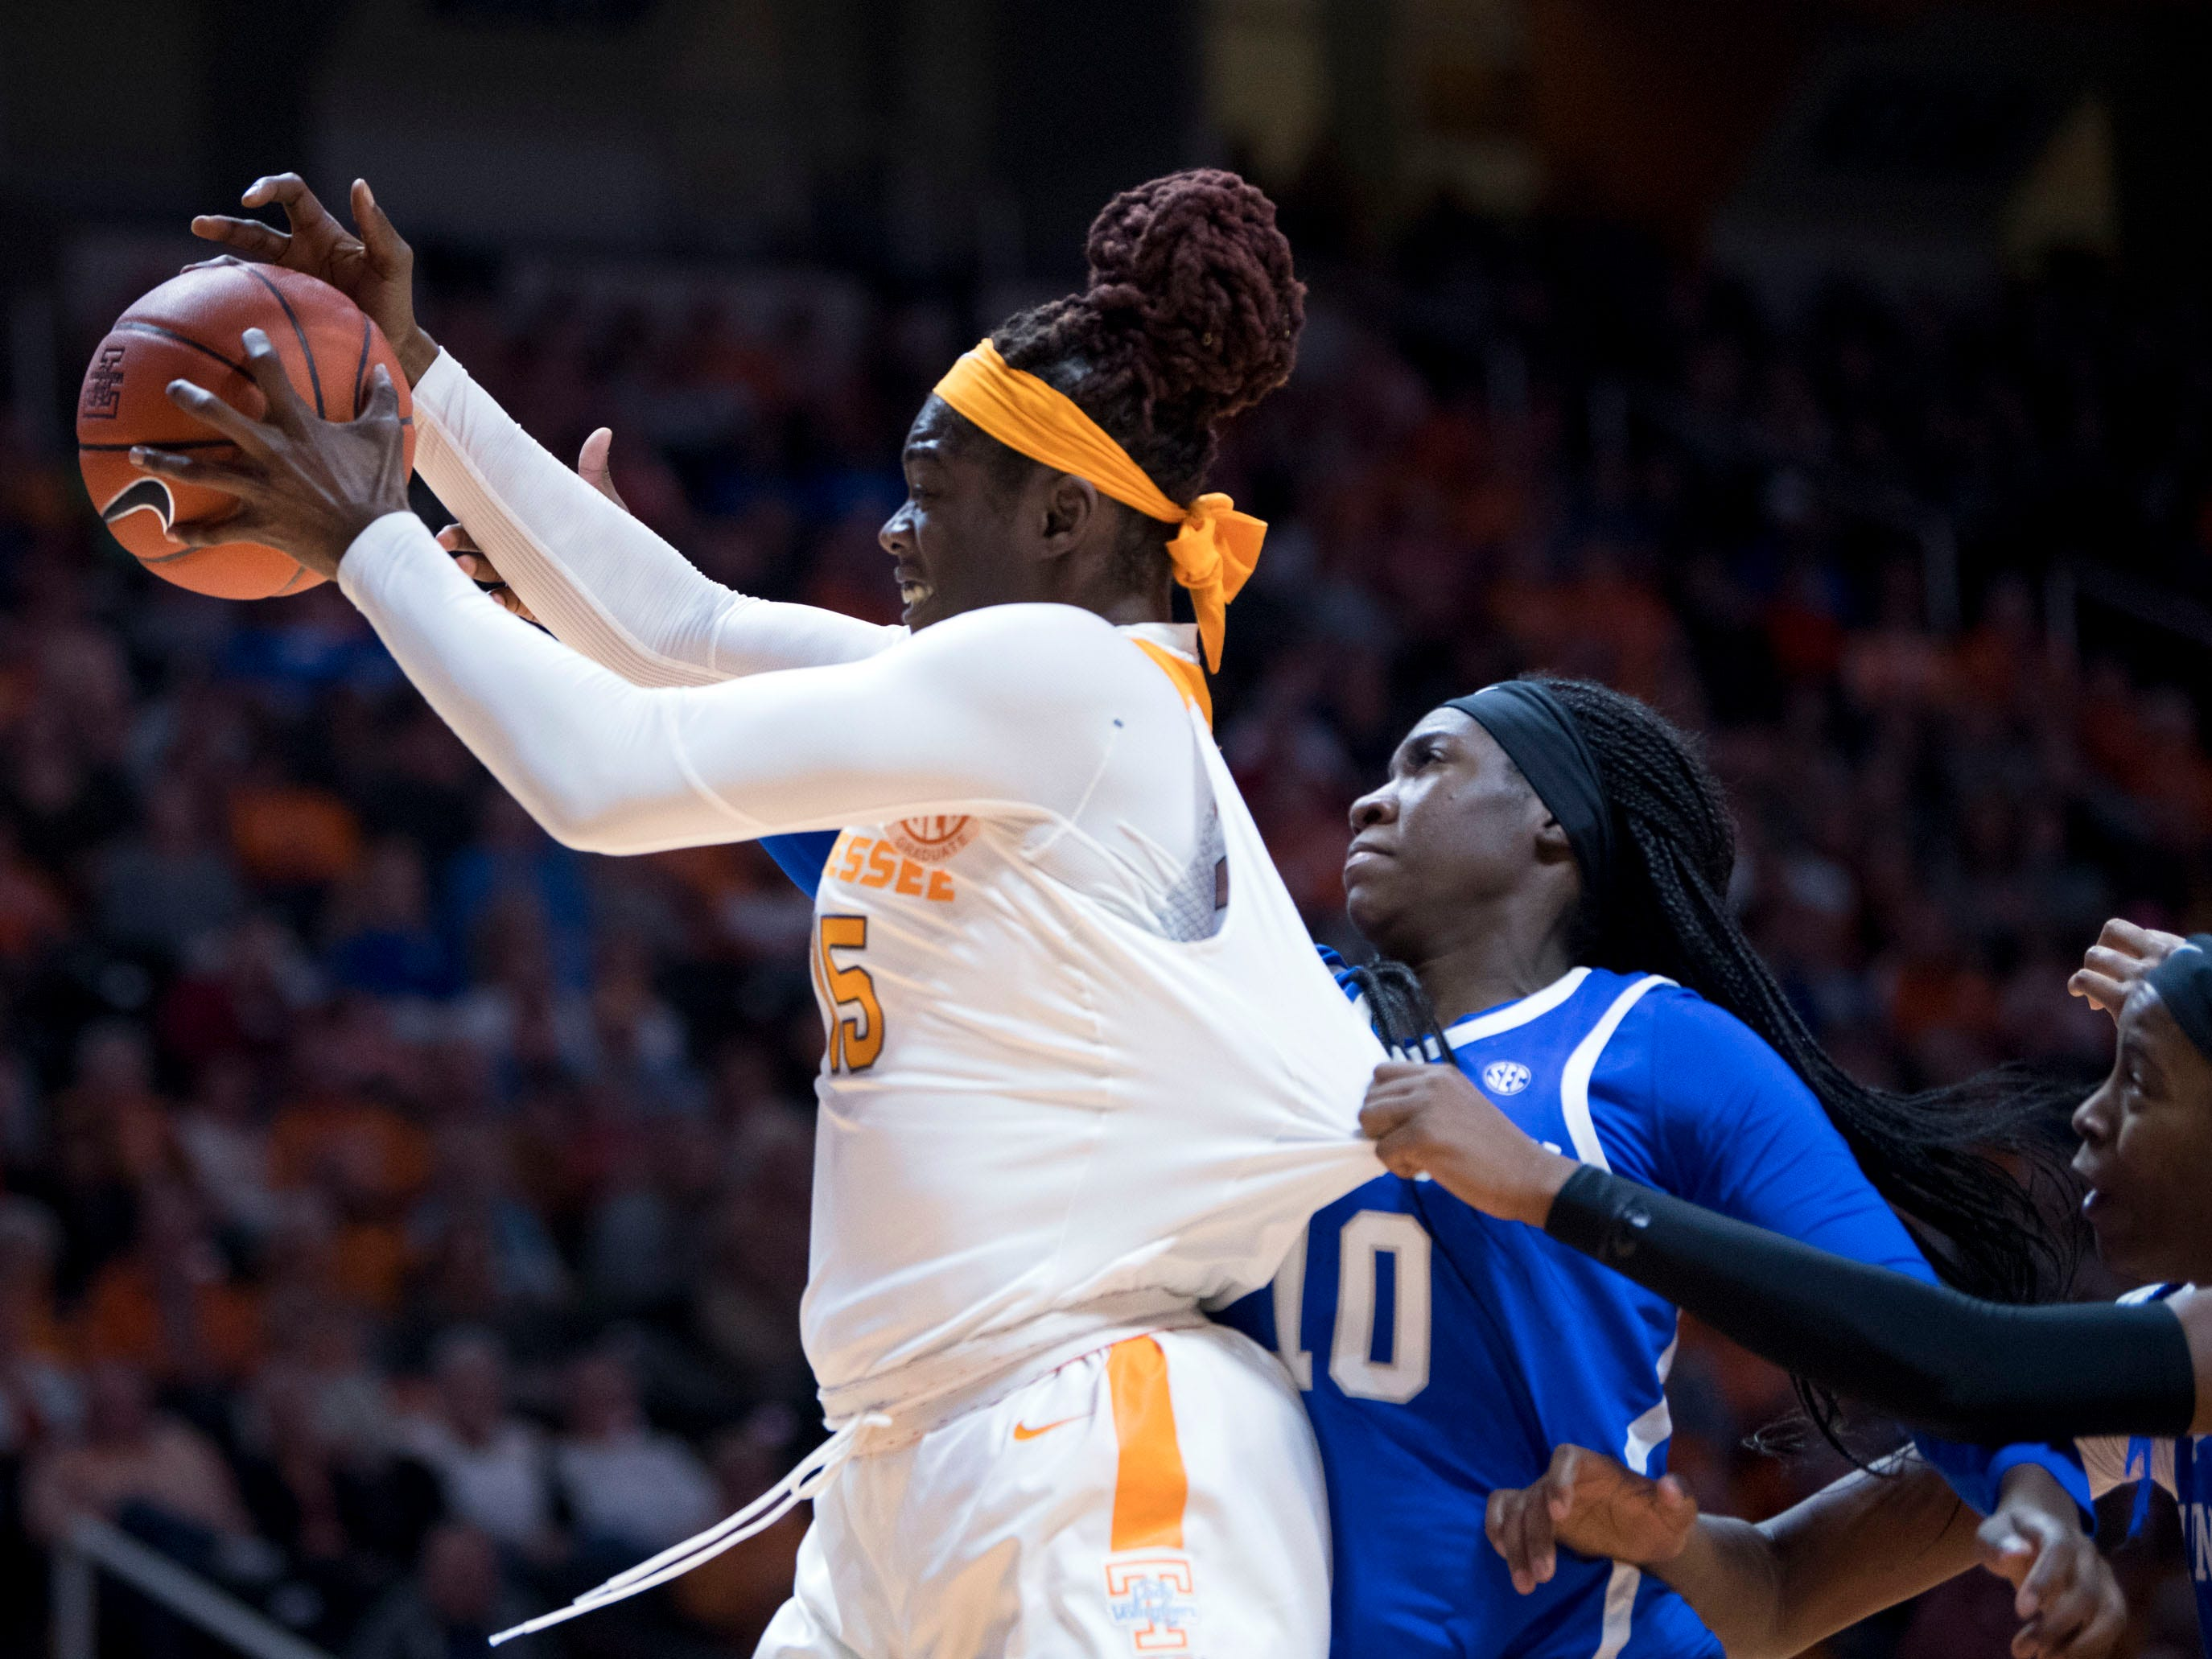 Tennessee's Cheridene Green (15) gets the rebound over Kentucky's Rhyne Howard (10) on Thursday, January 10, 2019.